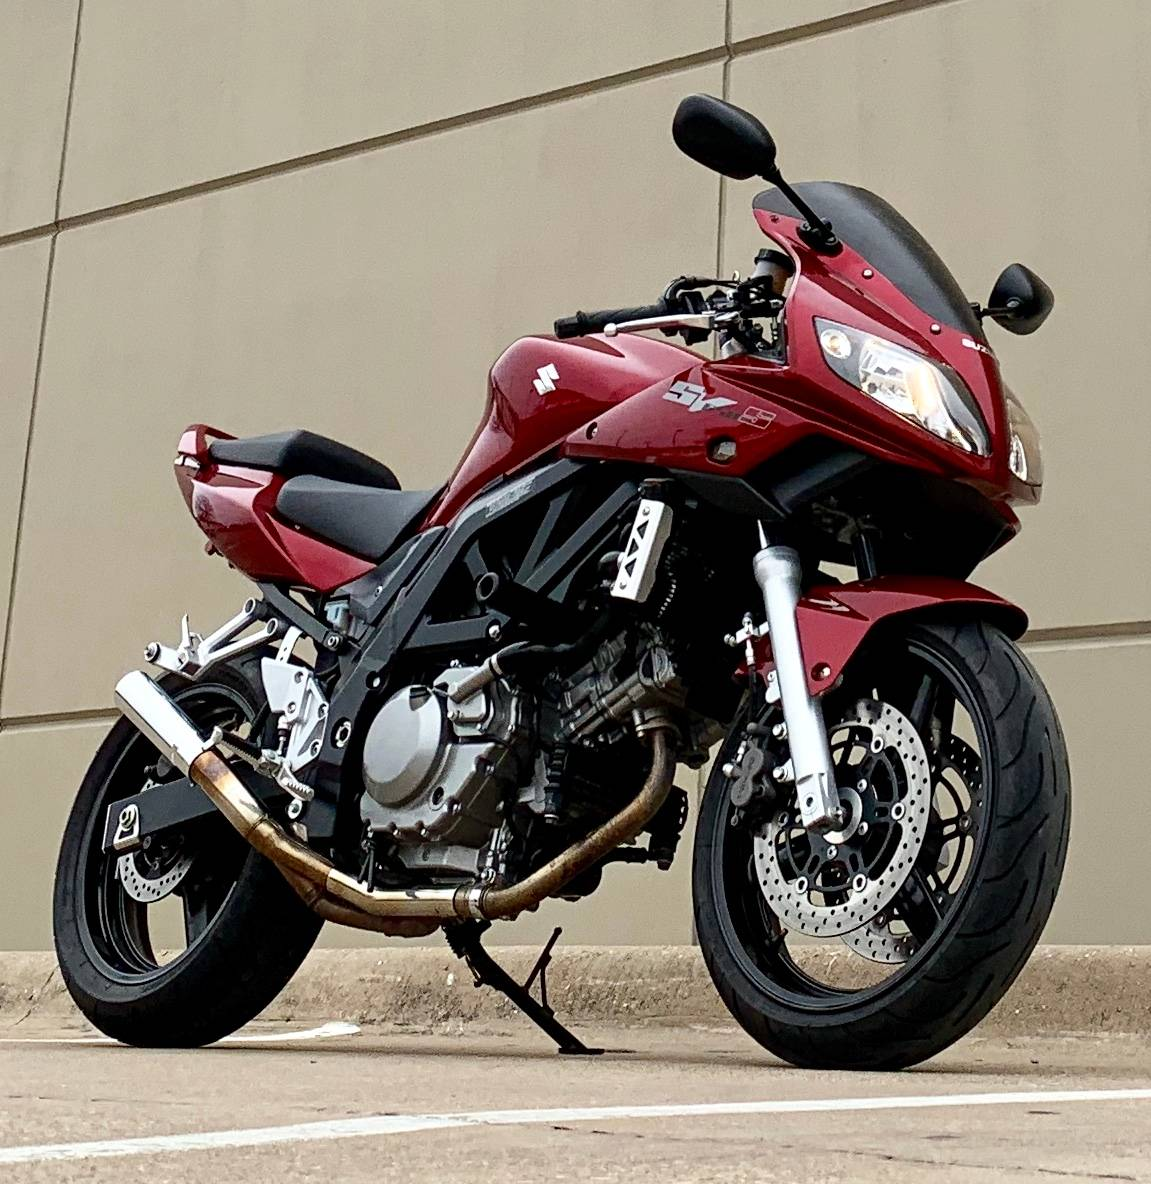 2007 Suzuki SV650S for sale 89419